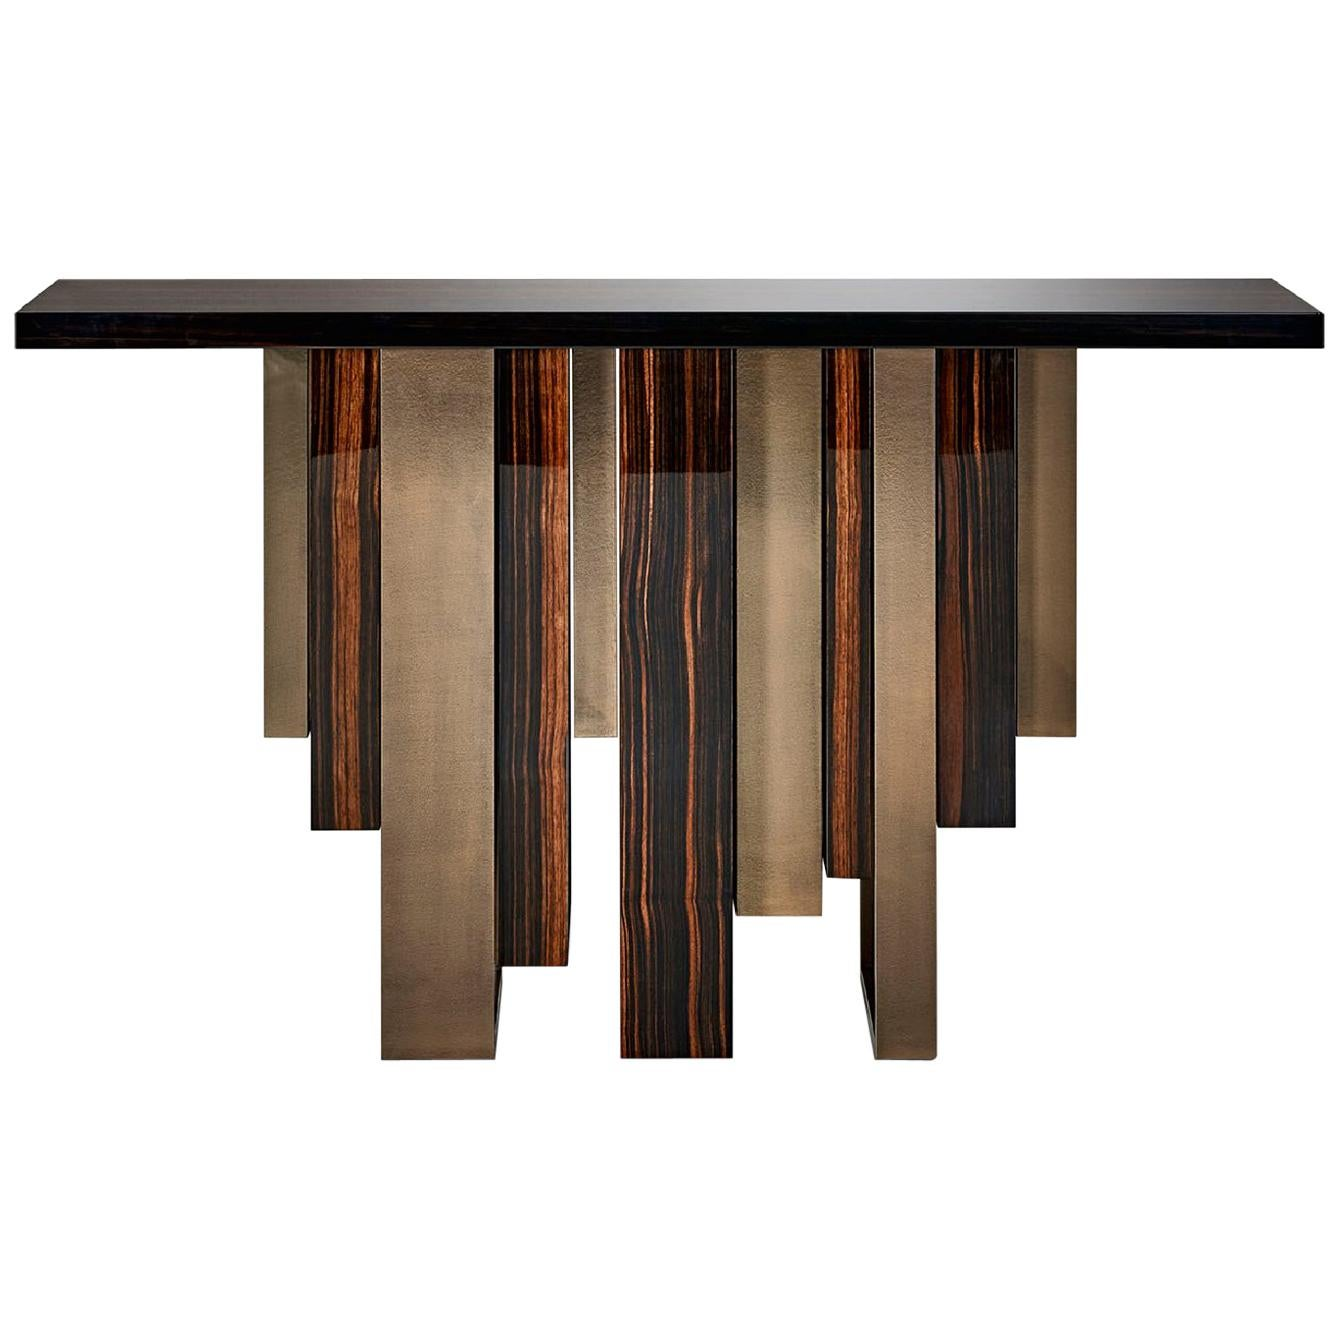 Console with Polished Ebony and Champagne Liquid Metal Finish Legs Top in Ebony